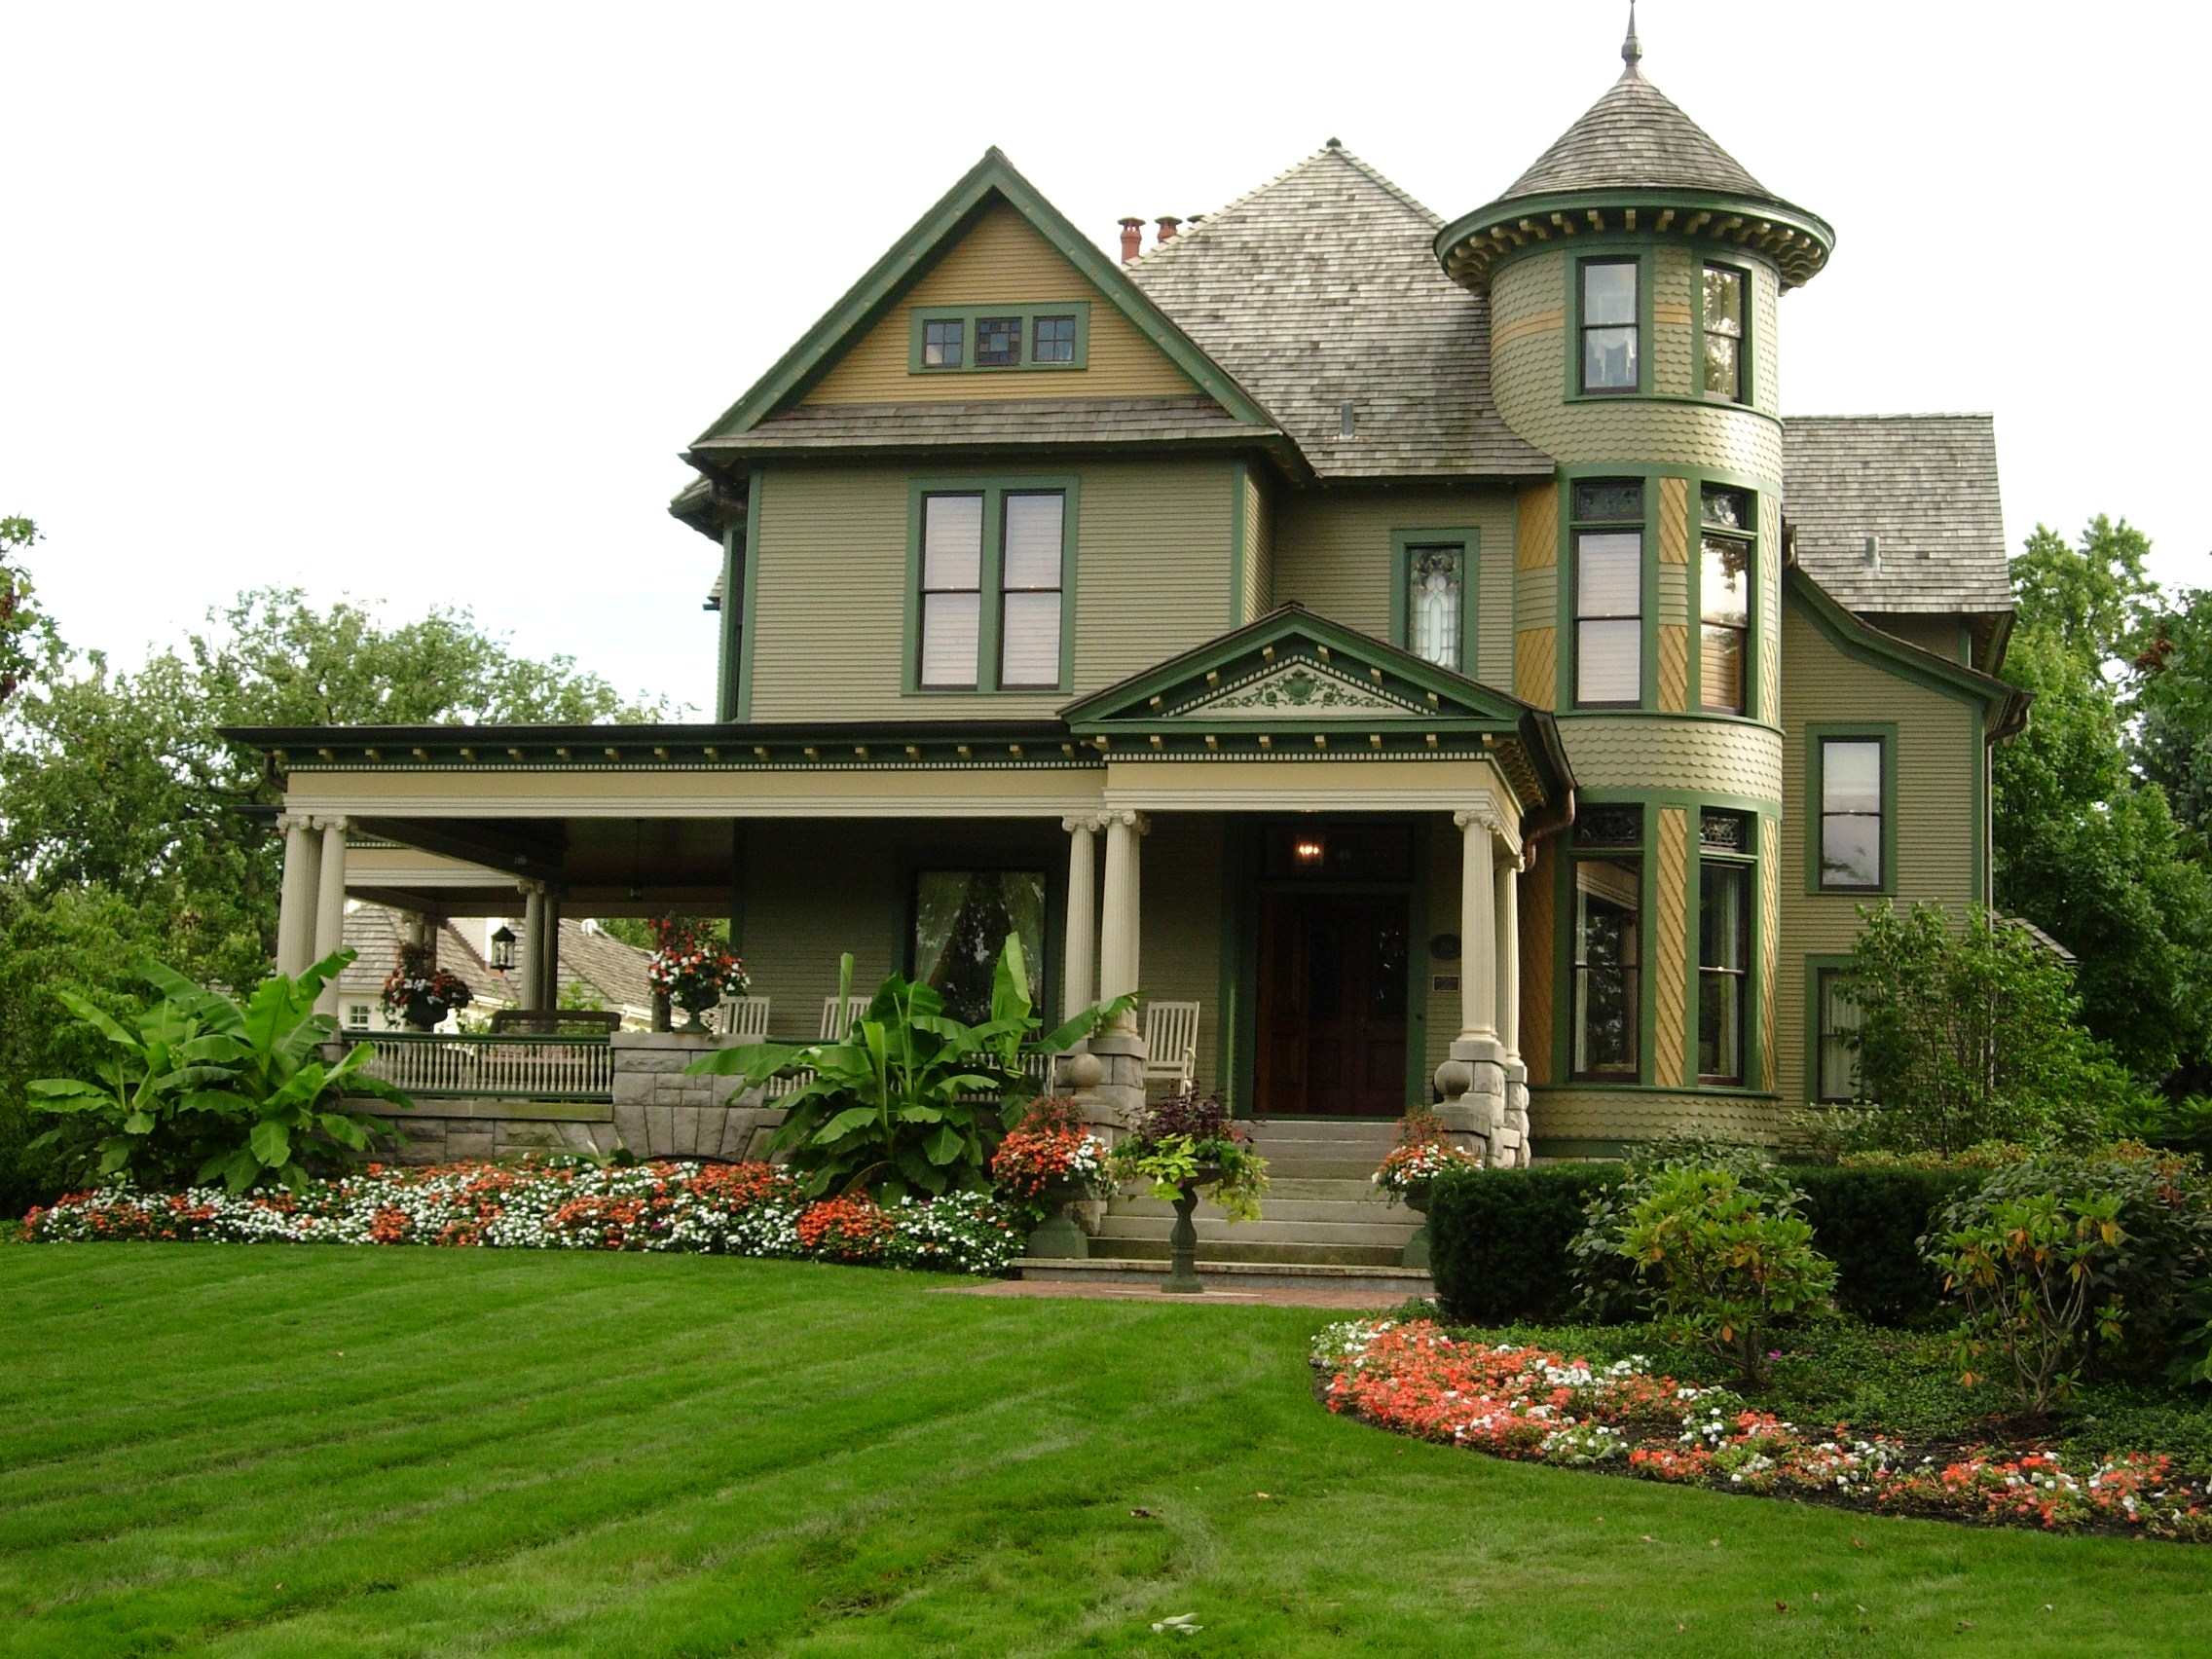 2272x1704 Architectural Drawing Design Home House Plans Victorian